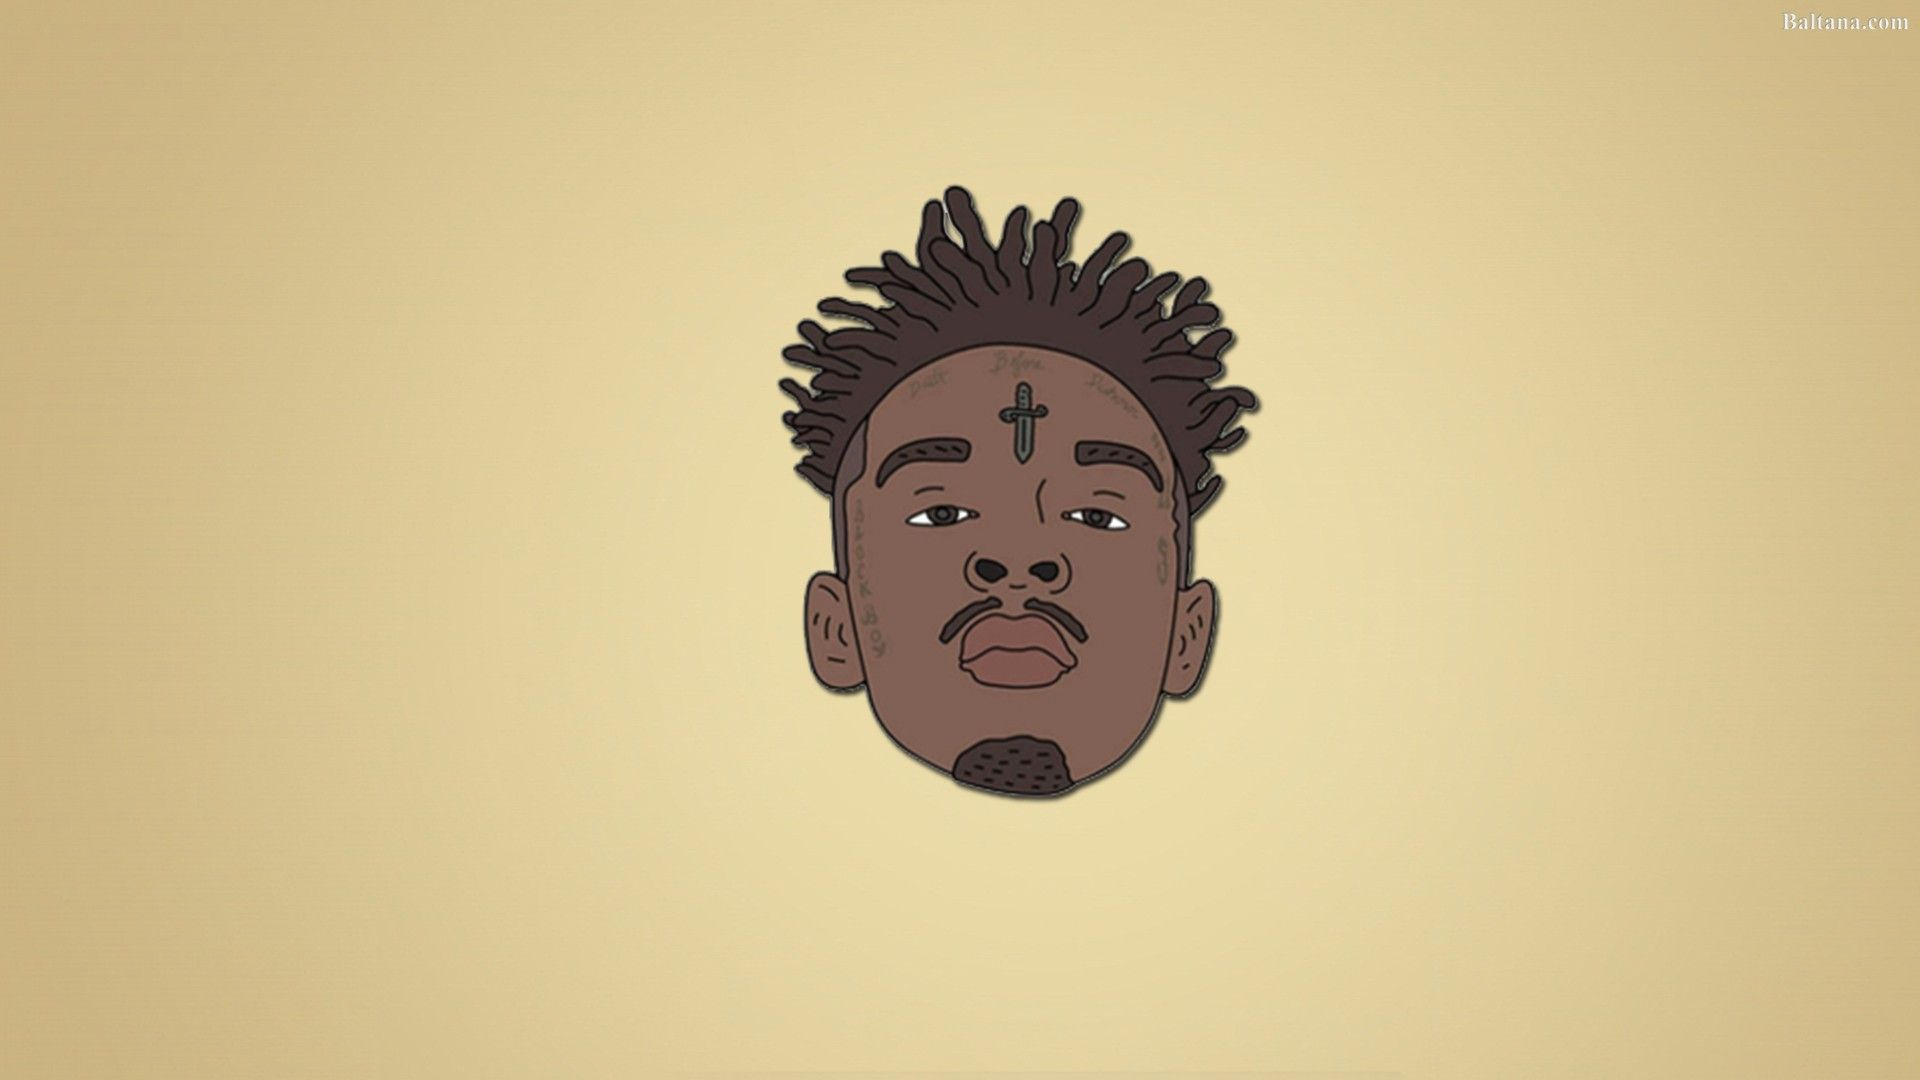 21 savage cartoon wallpapers top free 21 savage cartoon backgrounds wallpaperaccess 21 savage cartoon wallpapers top free